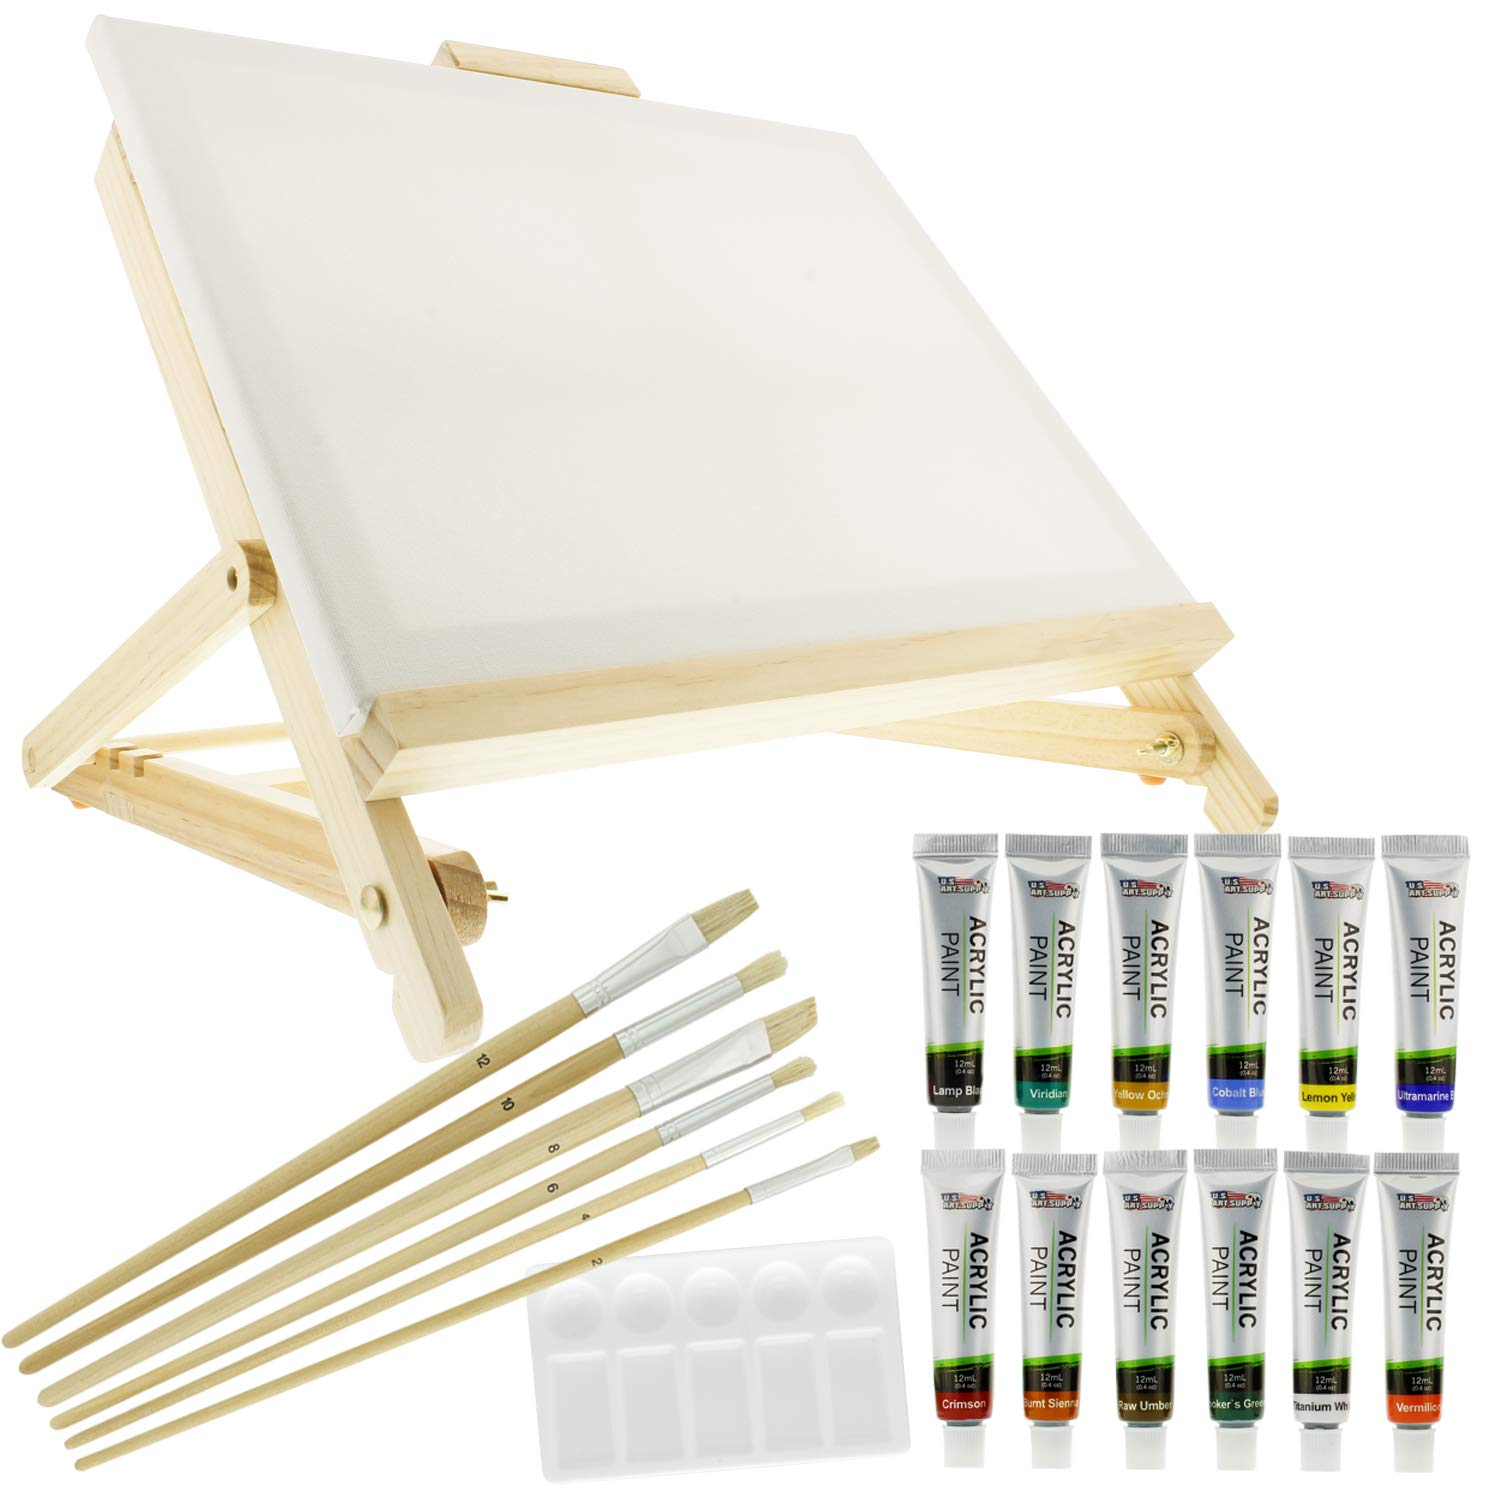 US Art Supply 21-Piece Acrylic Painting Table Easel Set with, 12-Tubes Acrylic Painting Colors, 11''x14'' Stretched Canvas, 6 Artist Brushes, Plastic Palette with 10 Wells